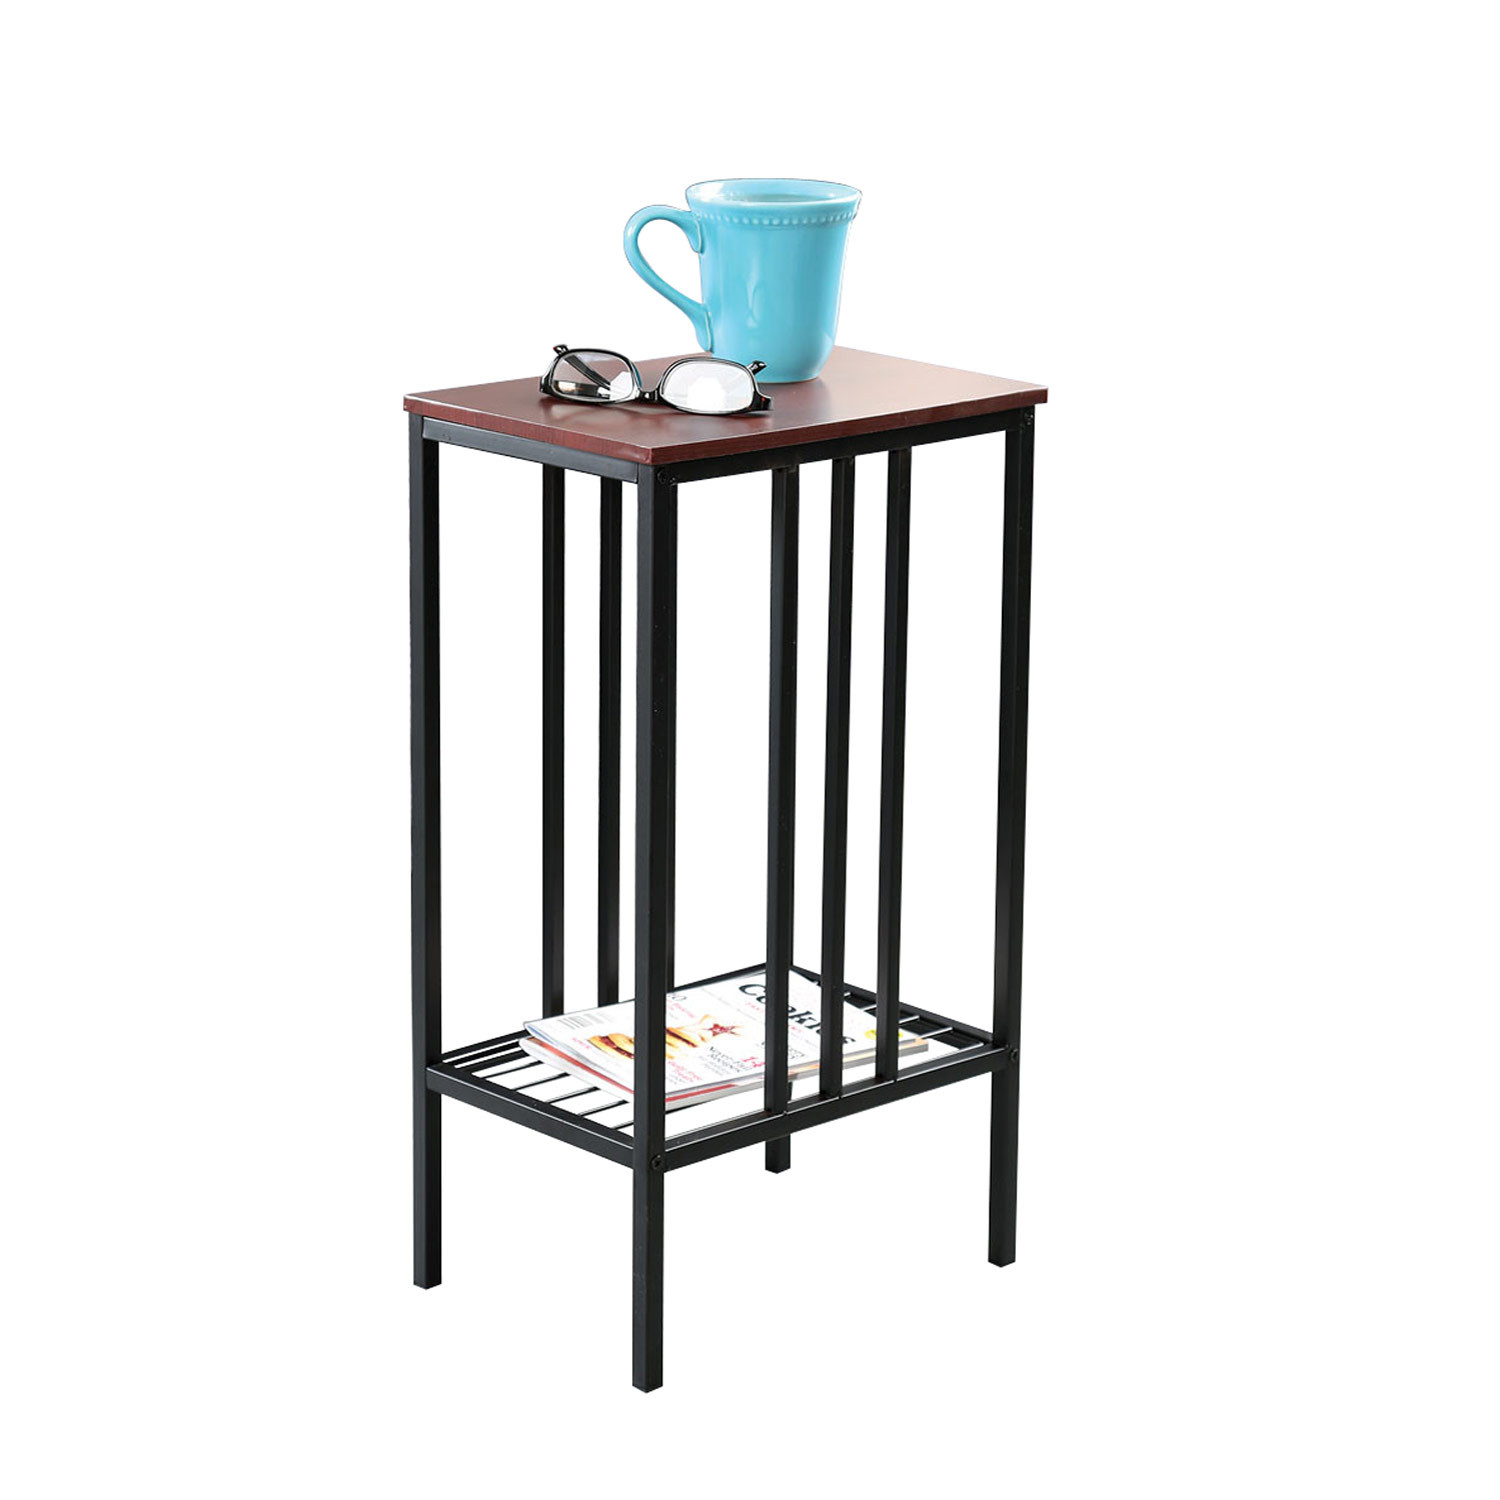 universal direct brands chair side sofa accent table black iron tray with walnut top storage snack white coffee drawers ikea shelves bins battery powered led lights wine rack tall